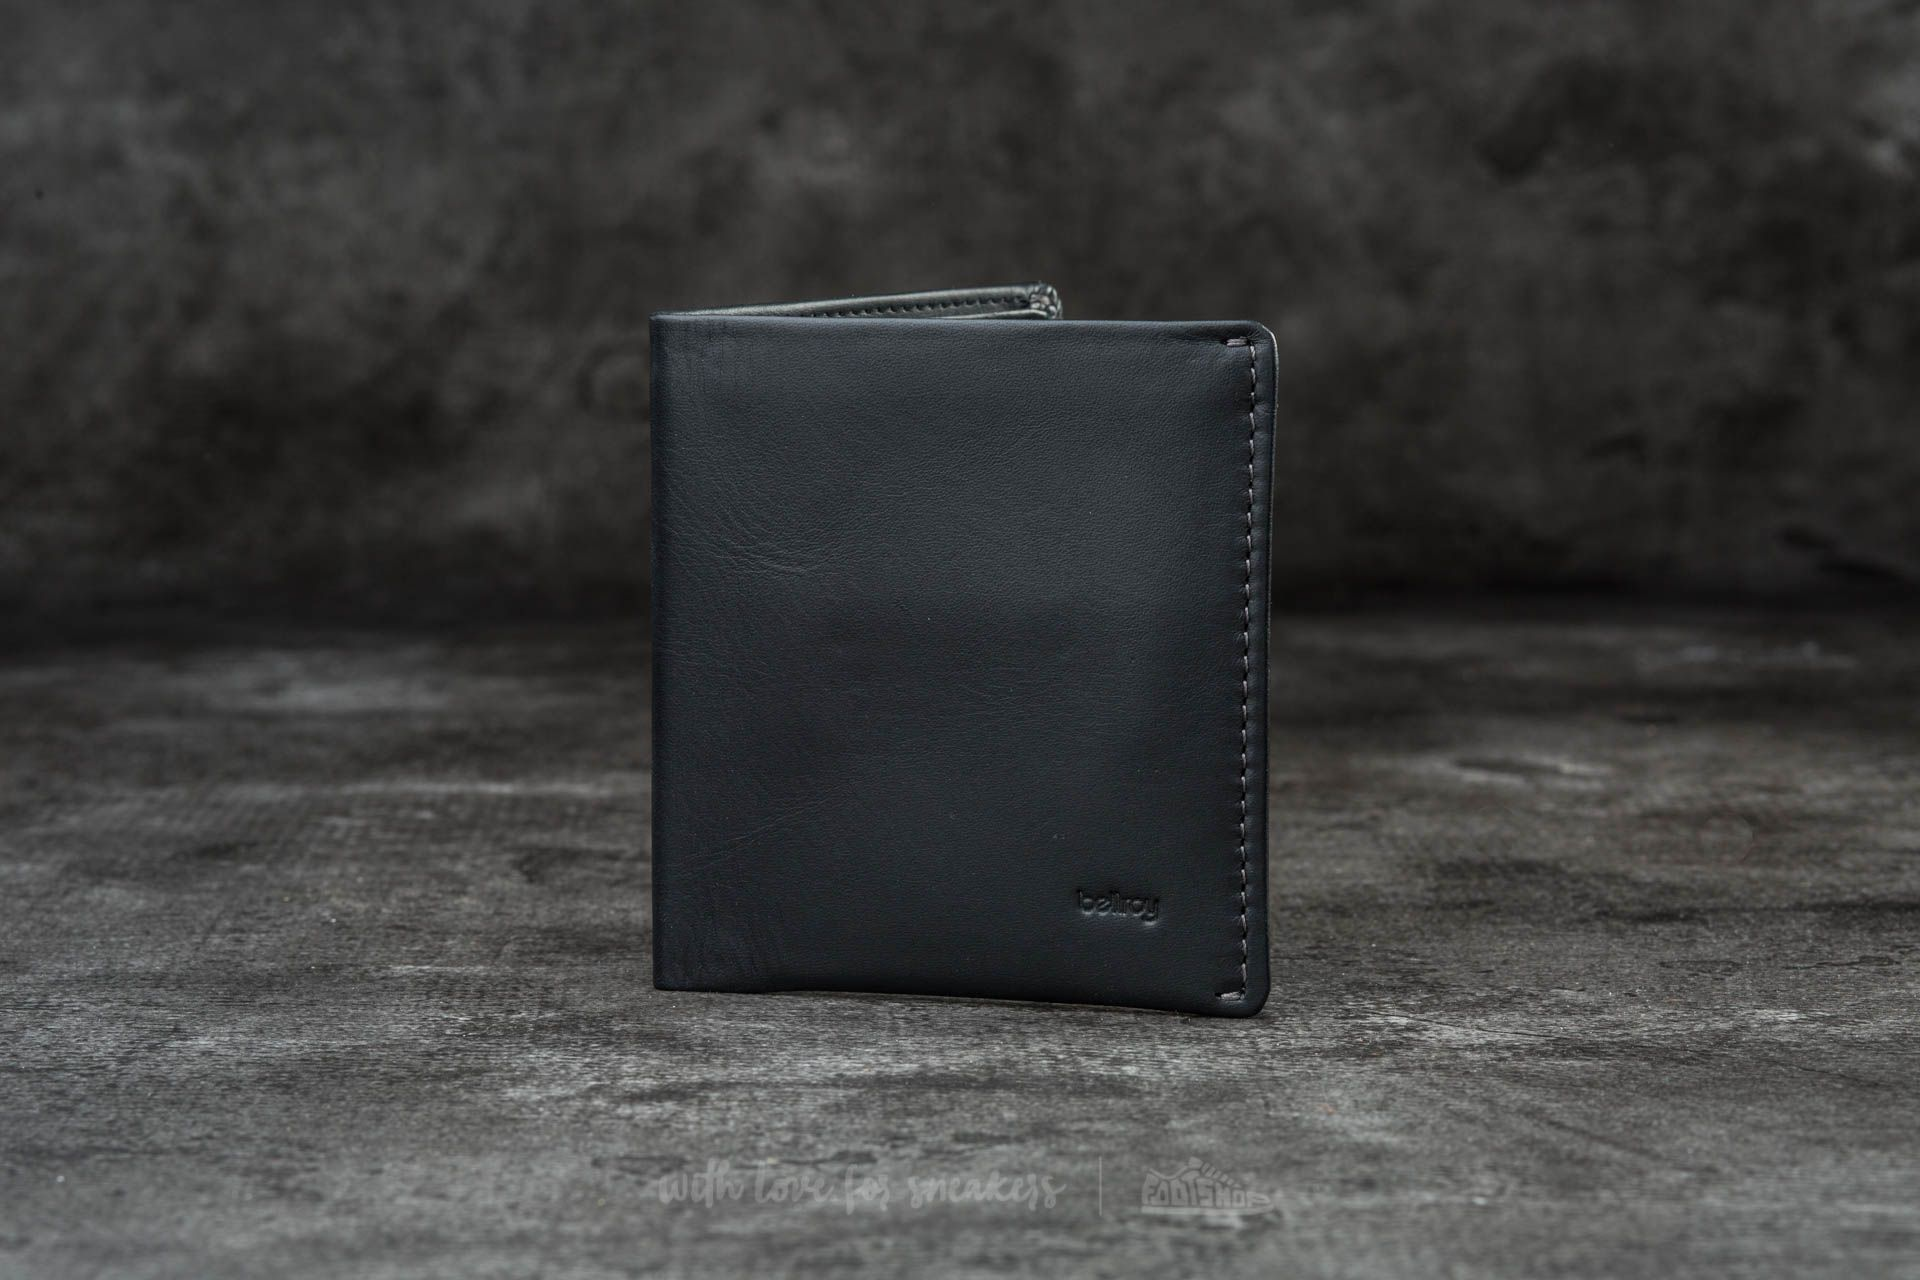 Bellroy Note Sleeve Wallet Black - 11939